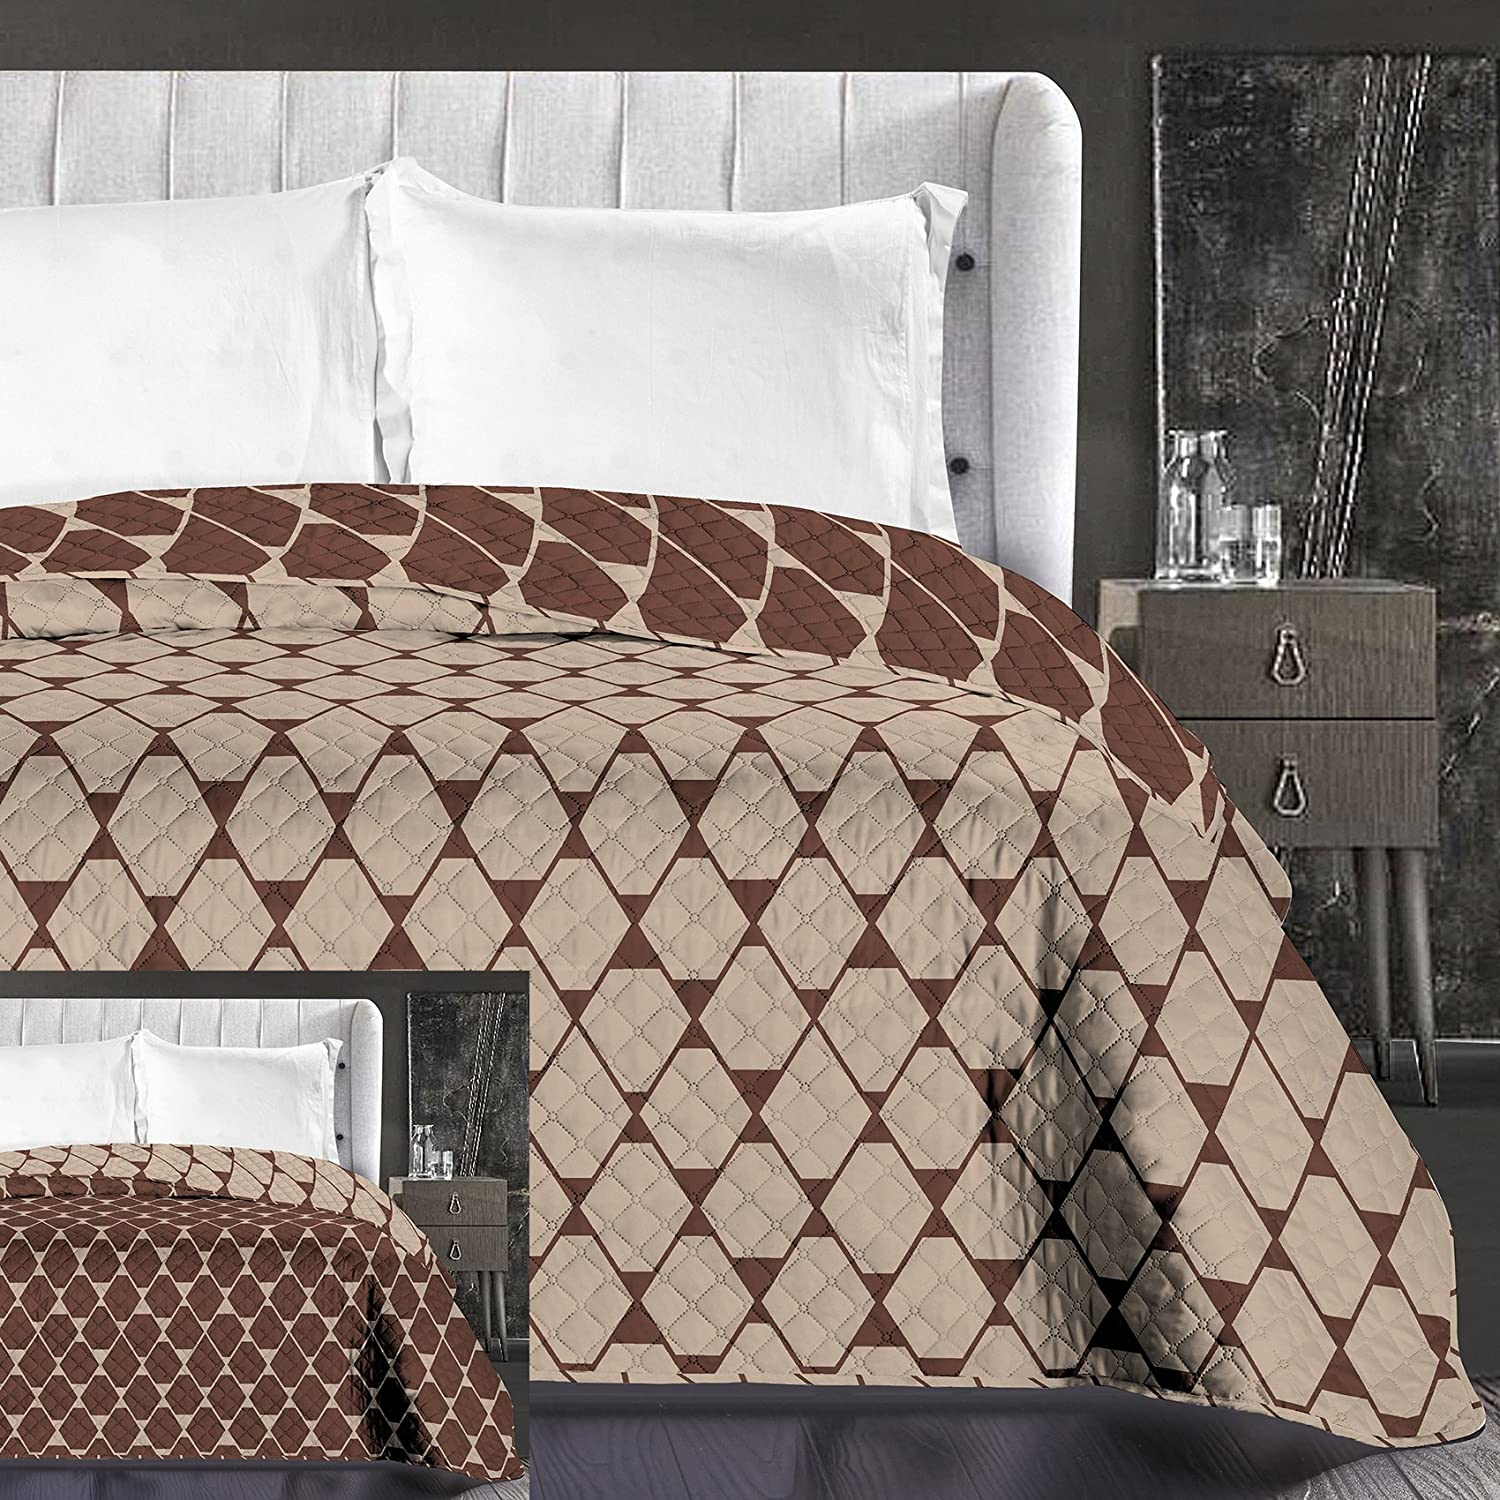 Microfibre Bed Linen Bedding with 1 pillowcase 80x80 Beige Geometric Squares Duvet Covers Sets Beige Cappuccino Brown Chocolate Brown Chocolate Hypnosis Rhombuses, Microfibre, Beige Brown, 135 x 200 DecoKing 92071